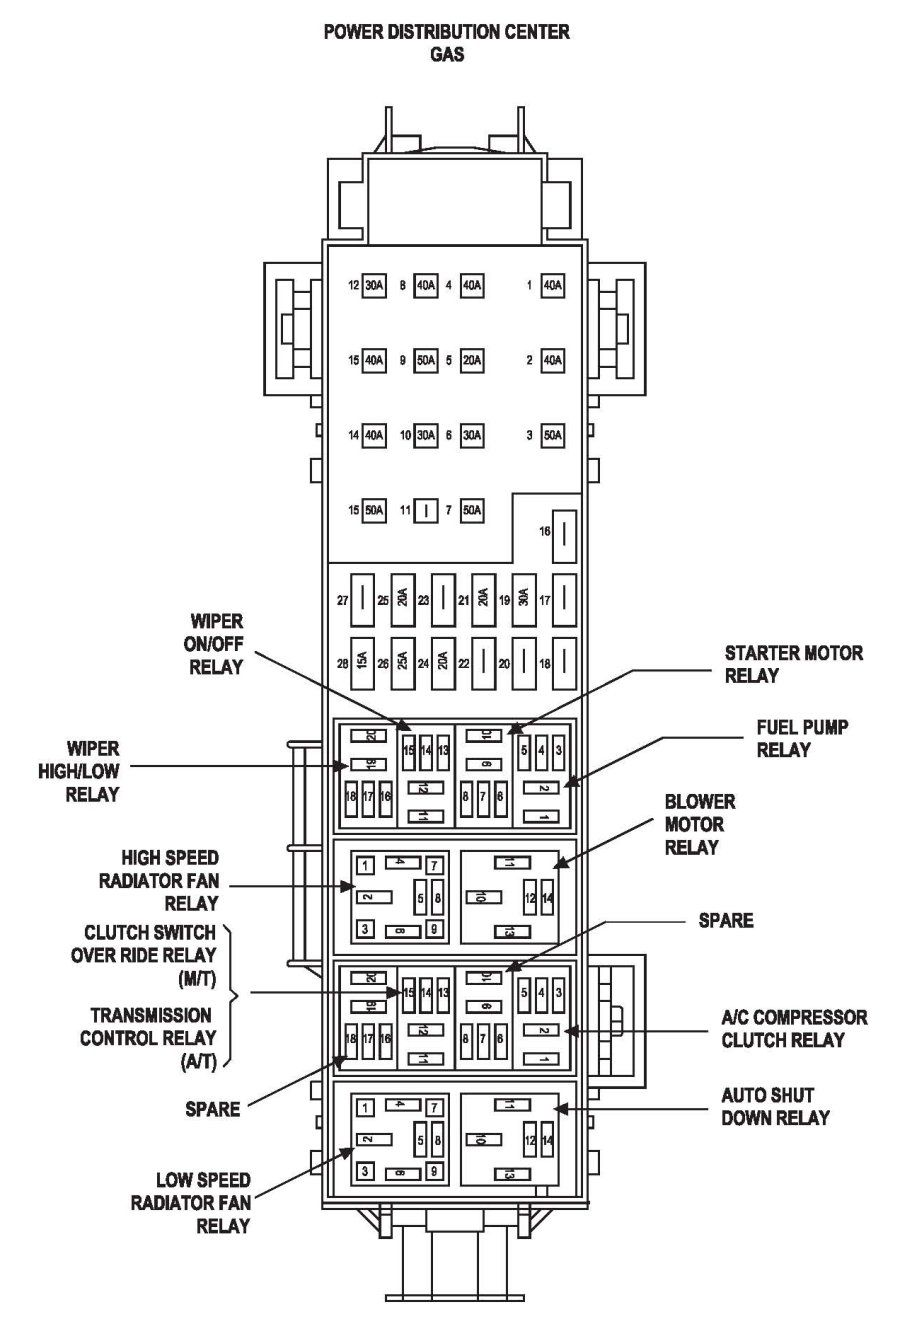 b3536c3739783eb19f827744cc42c3c4 jeep liberty fuse box diagram image details jeep liberty jeep wrangler tj fuse box diagram at gsmx.co